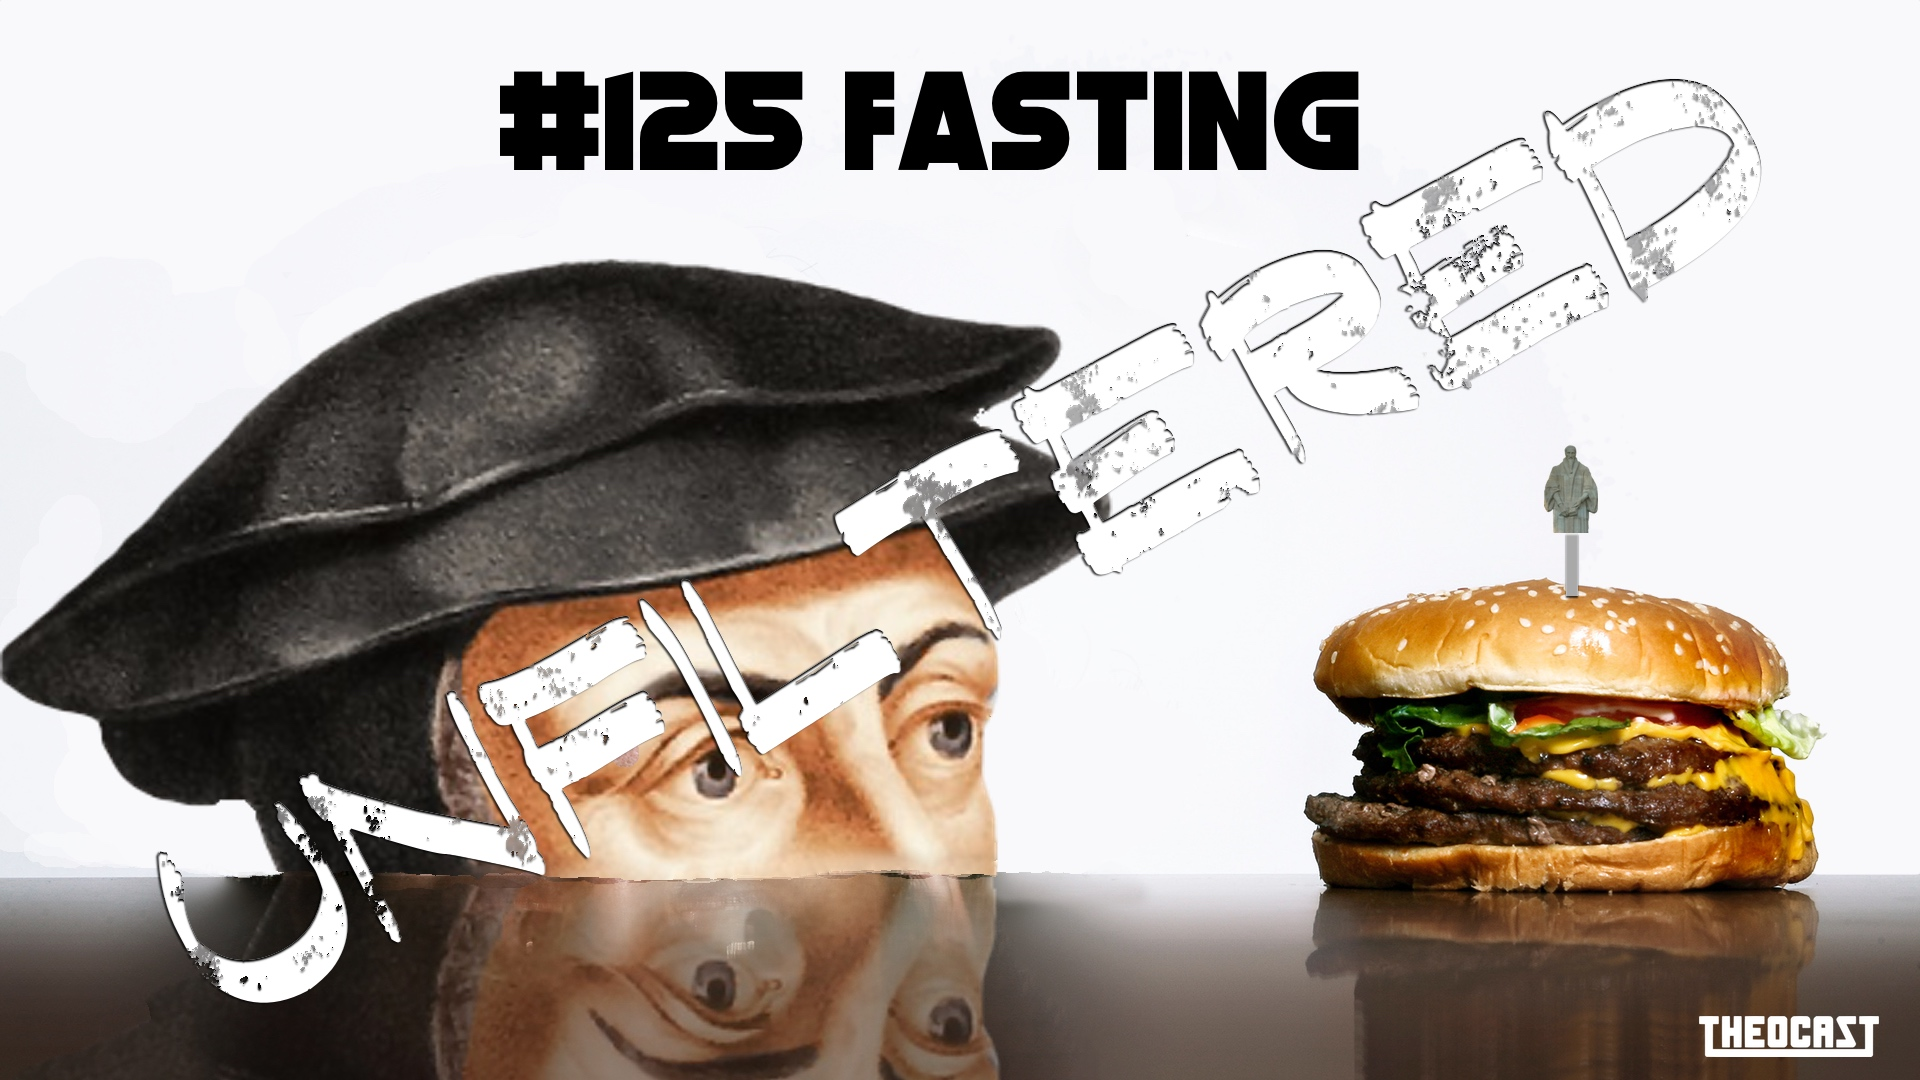 UNFILTERED #125 Fasting